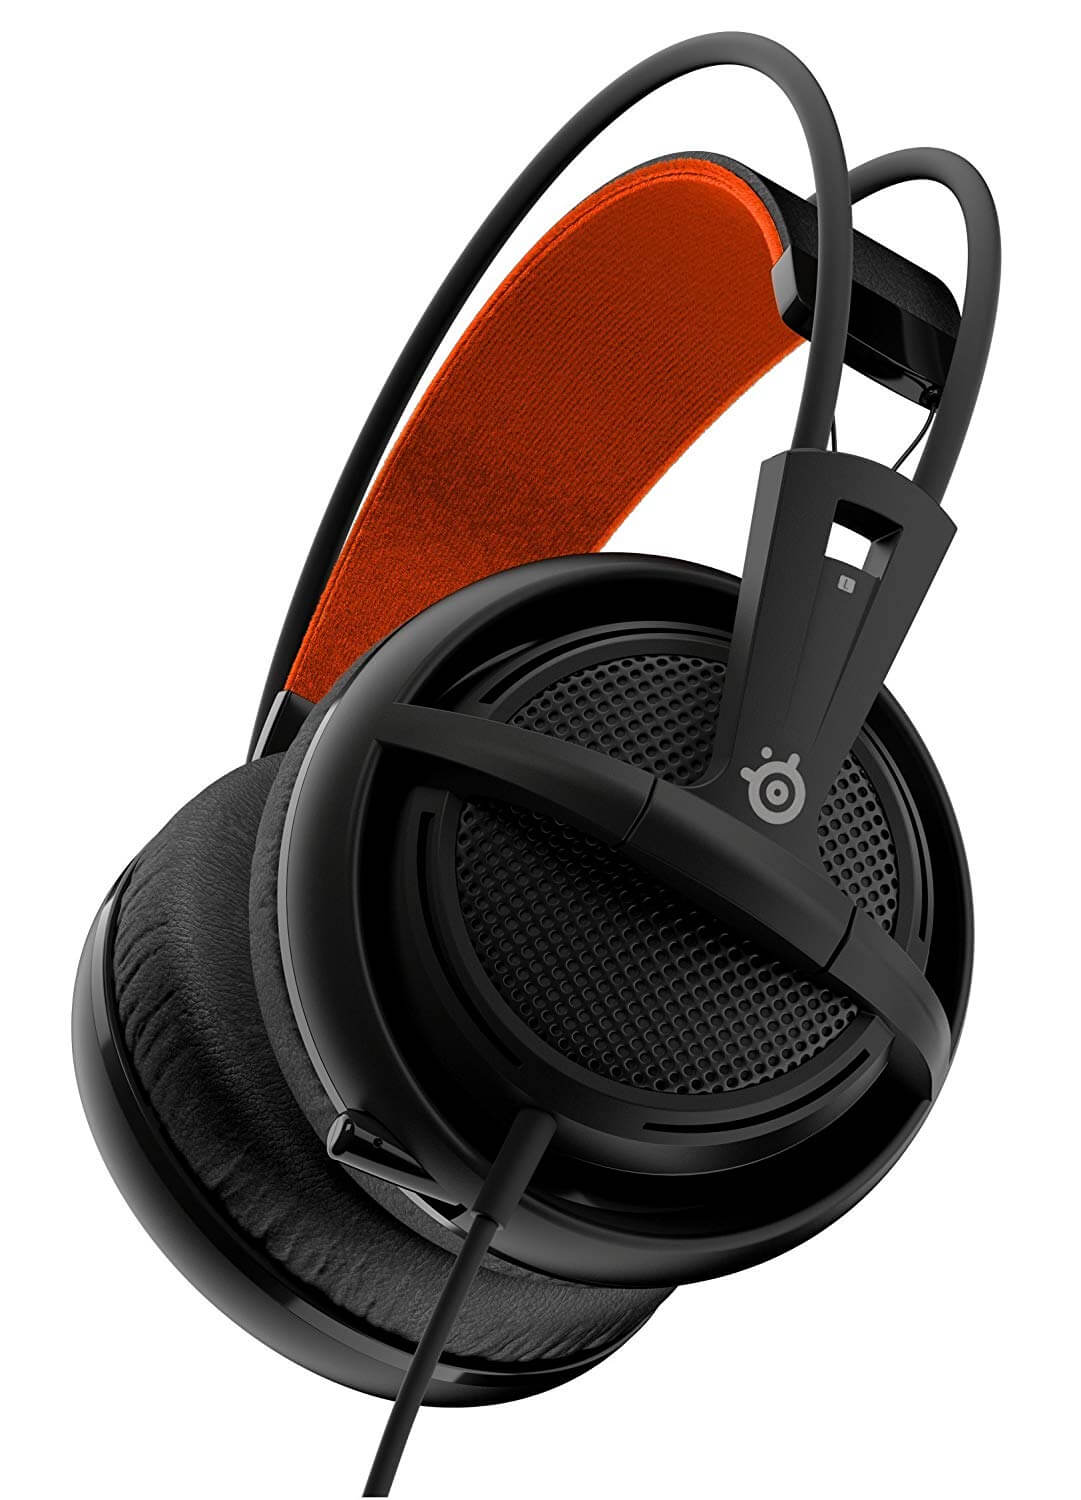 SteelSeries Siberia 200 Headset (formerly Siberia v2)